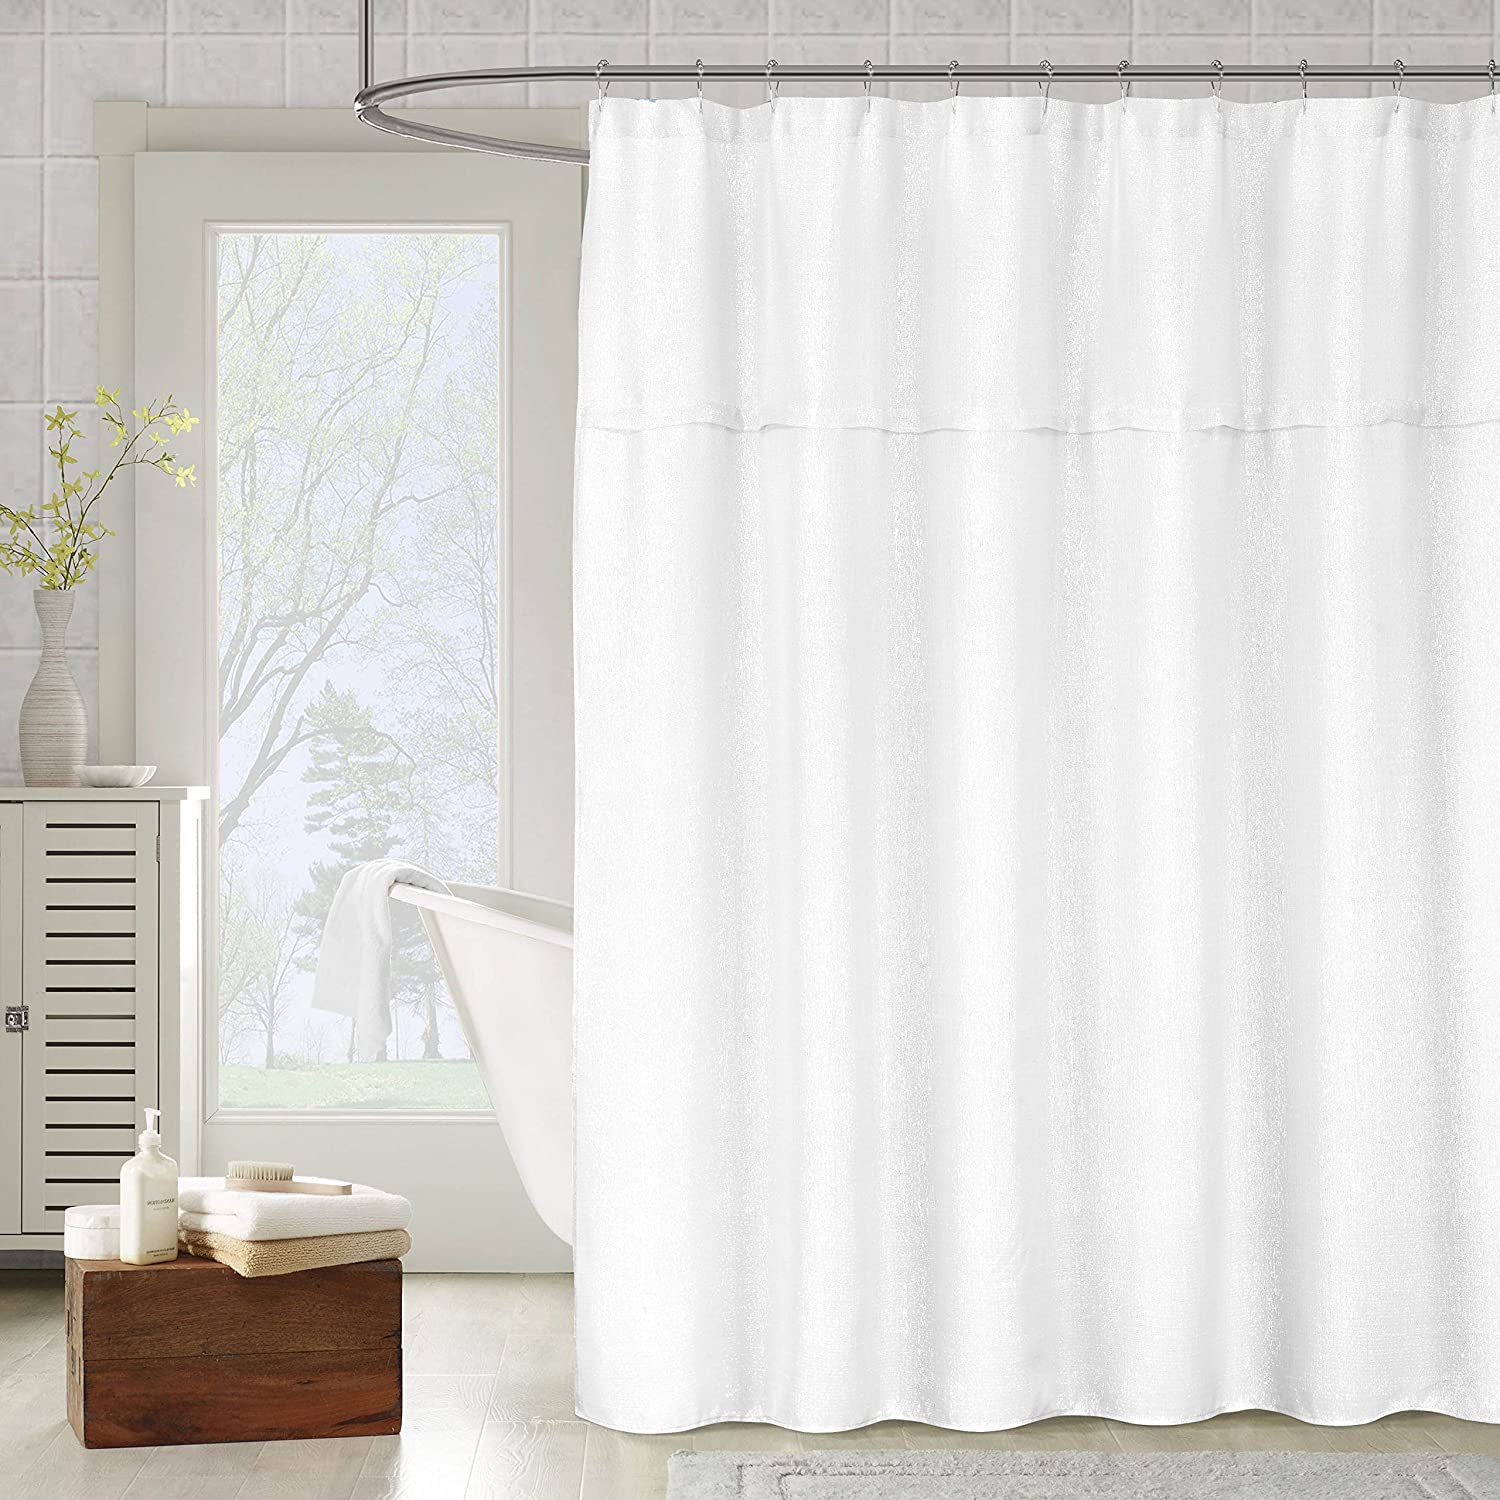 Amazon Metallic Fabric Shower Curtain Textured Sheer 70 W X 72 L White Home Kitchen